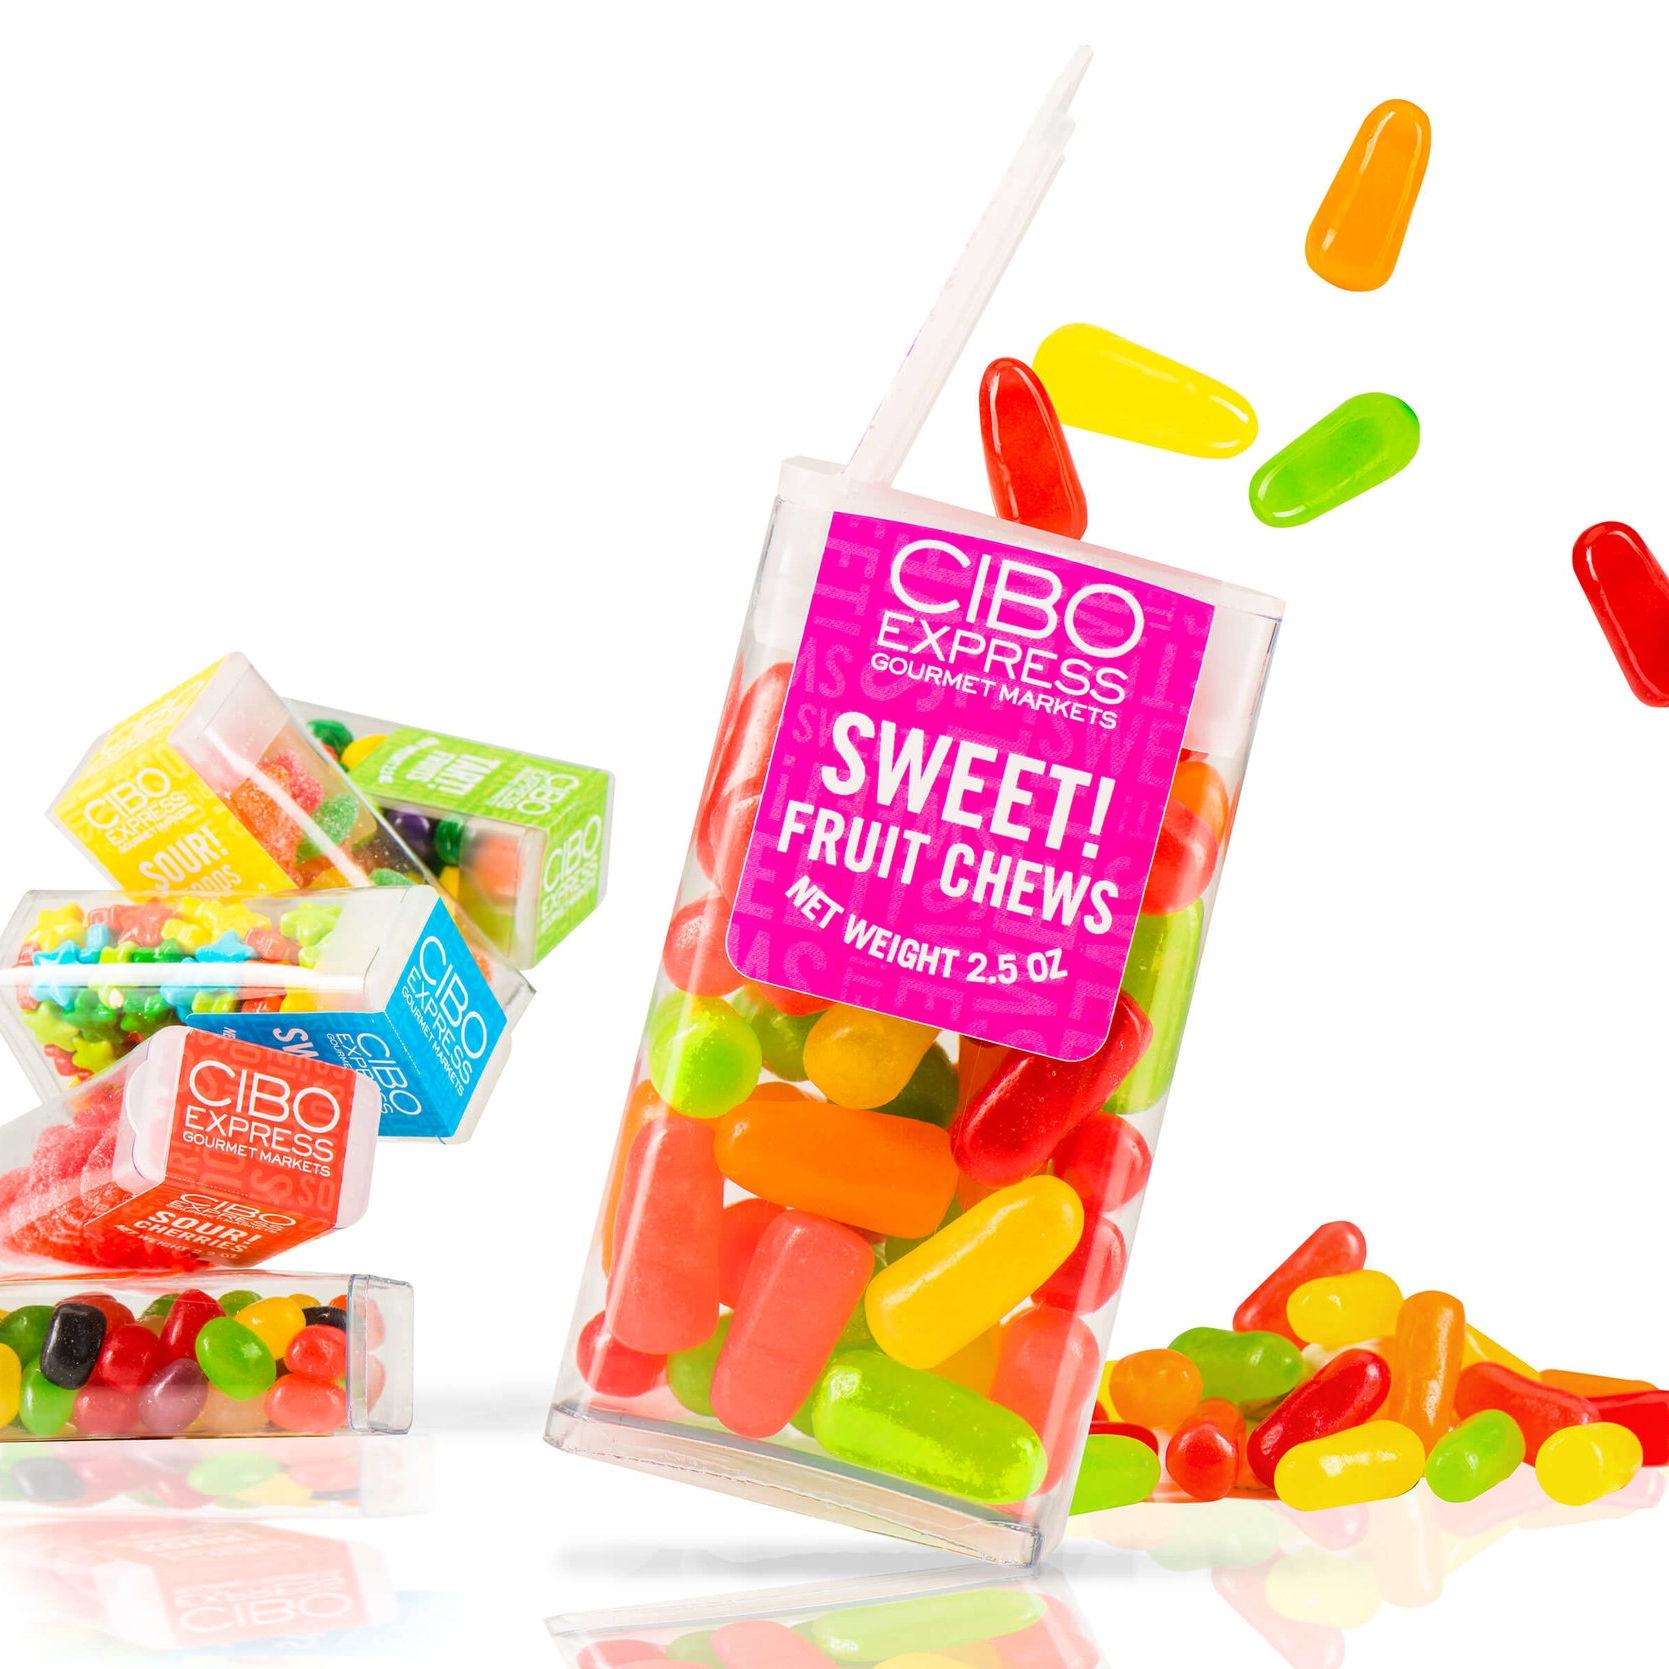 SGR & Cibo Packaging -